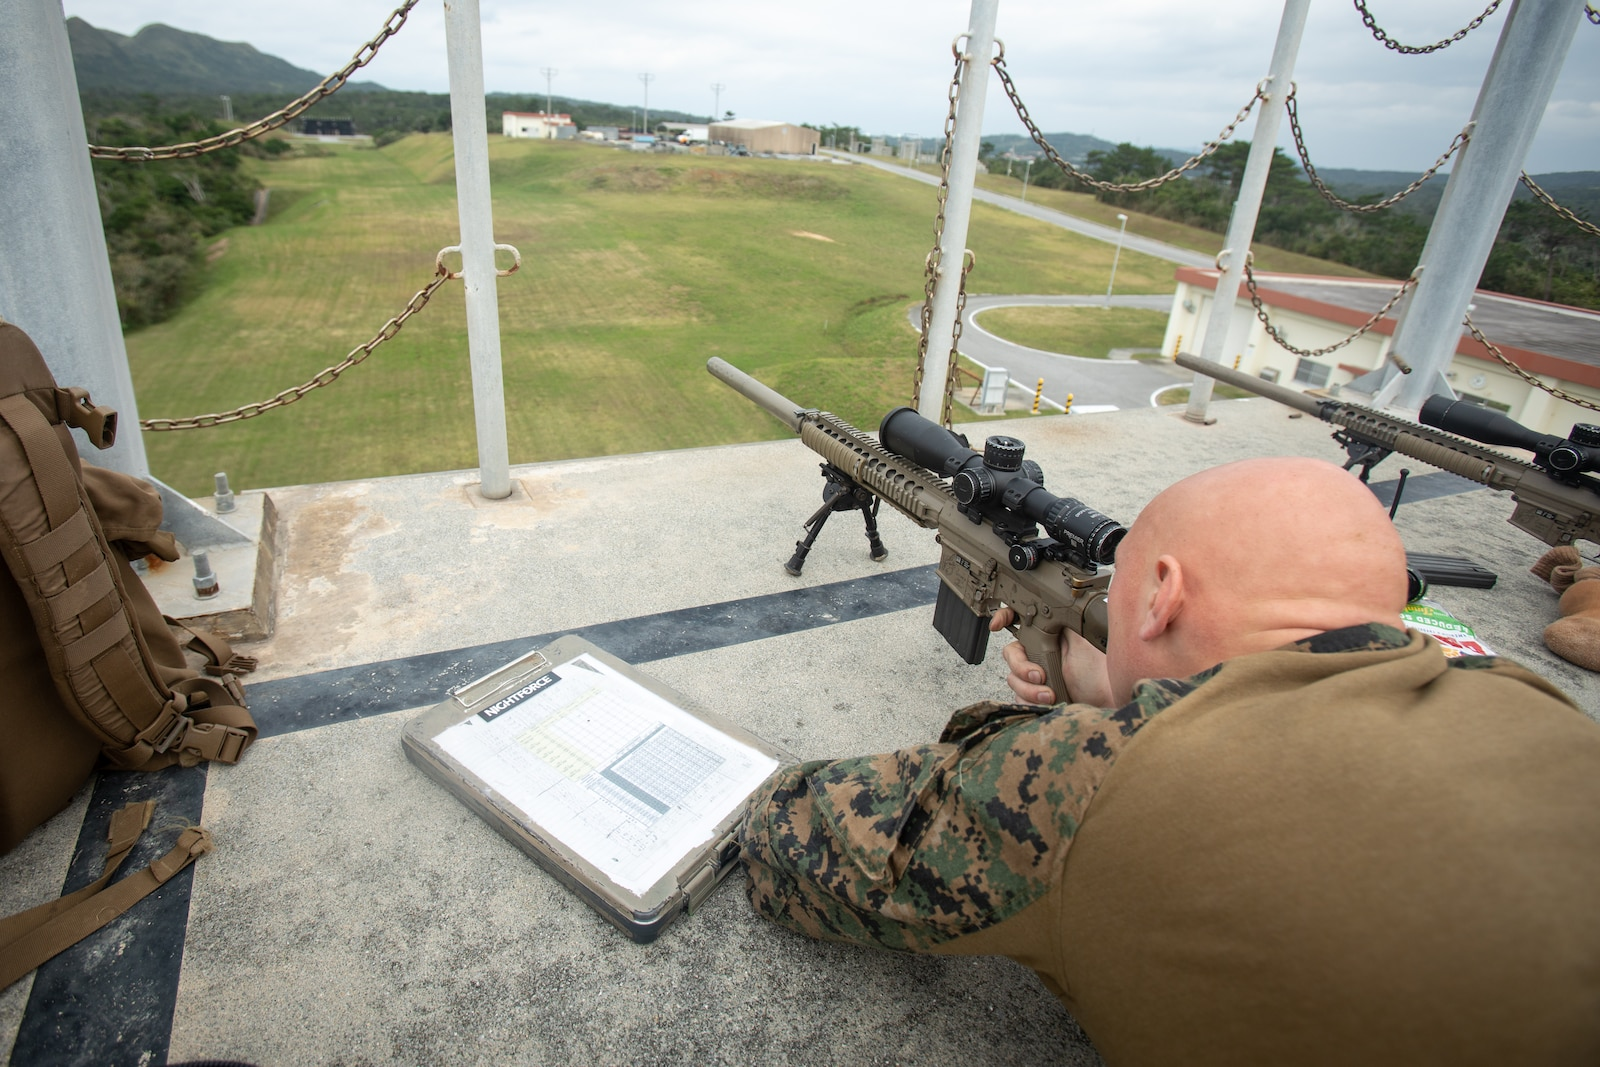 Cpl Miller sights in from the top of the Sniper Tower